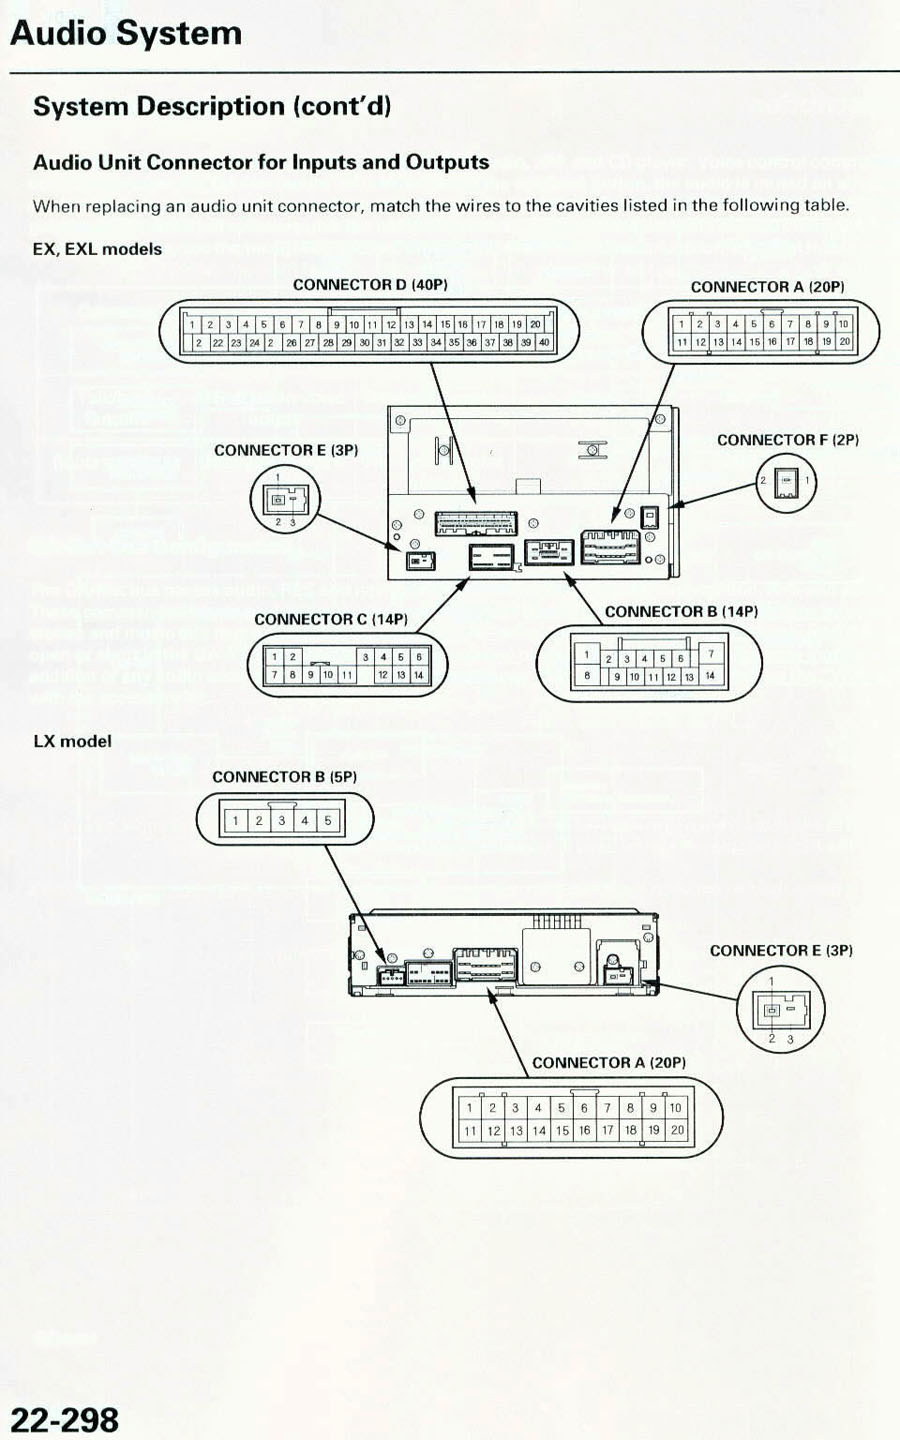 2005 Honda Odyssey Radio Wiring Diagram Libraries On 4 Wire Trailer Plug Lighting 2007 Pilot Stereo Detailed Diagram2008 Third